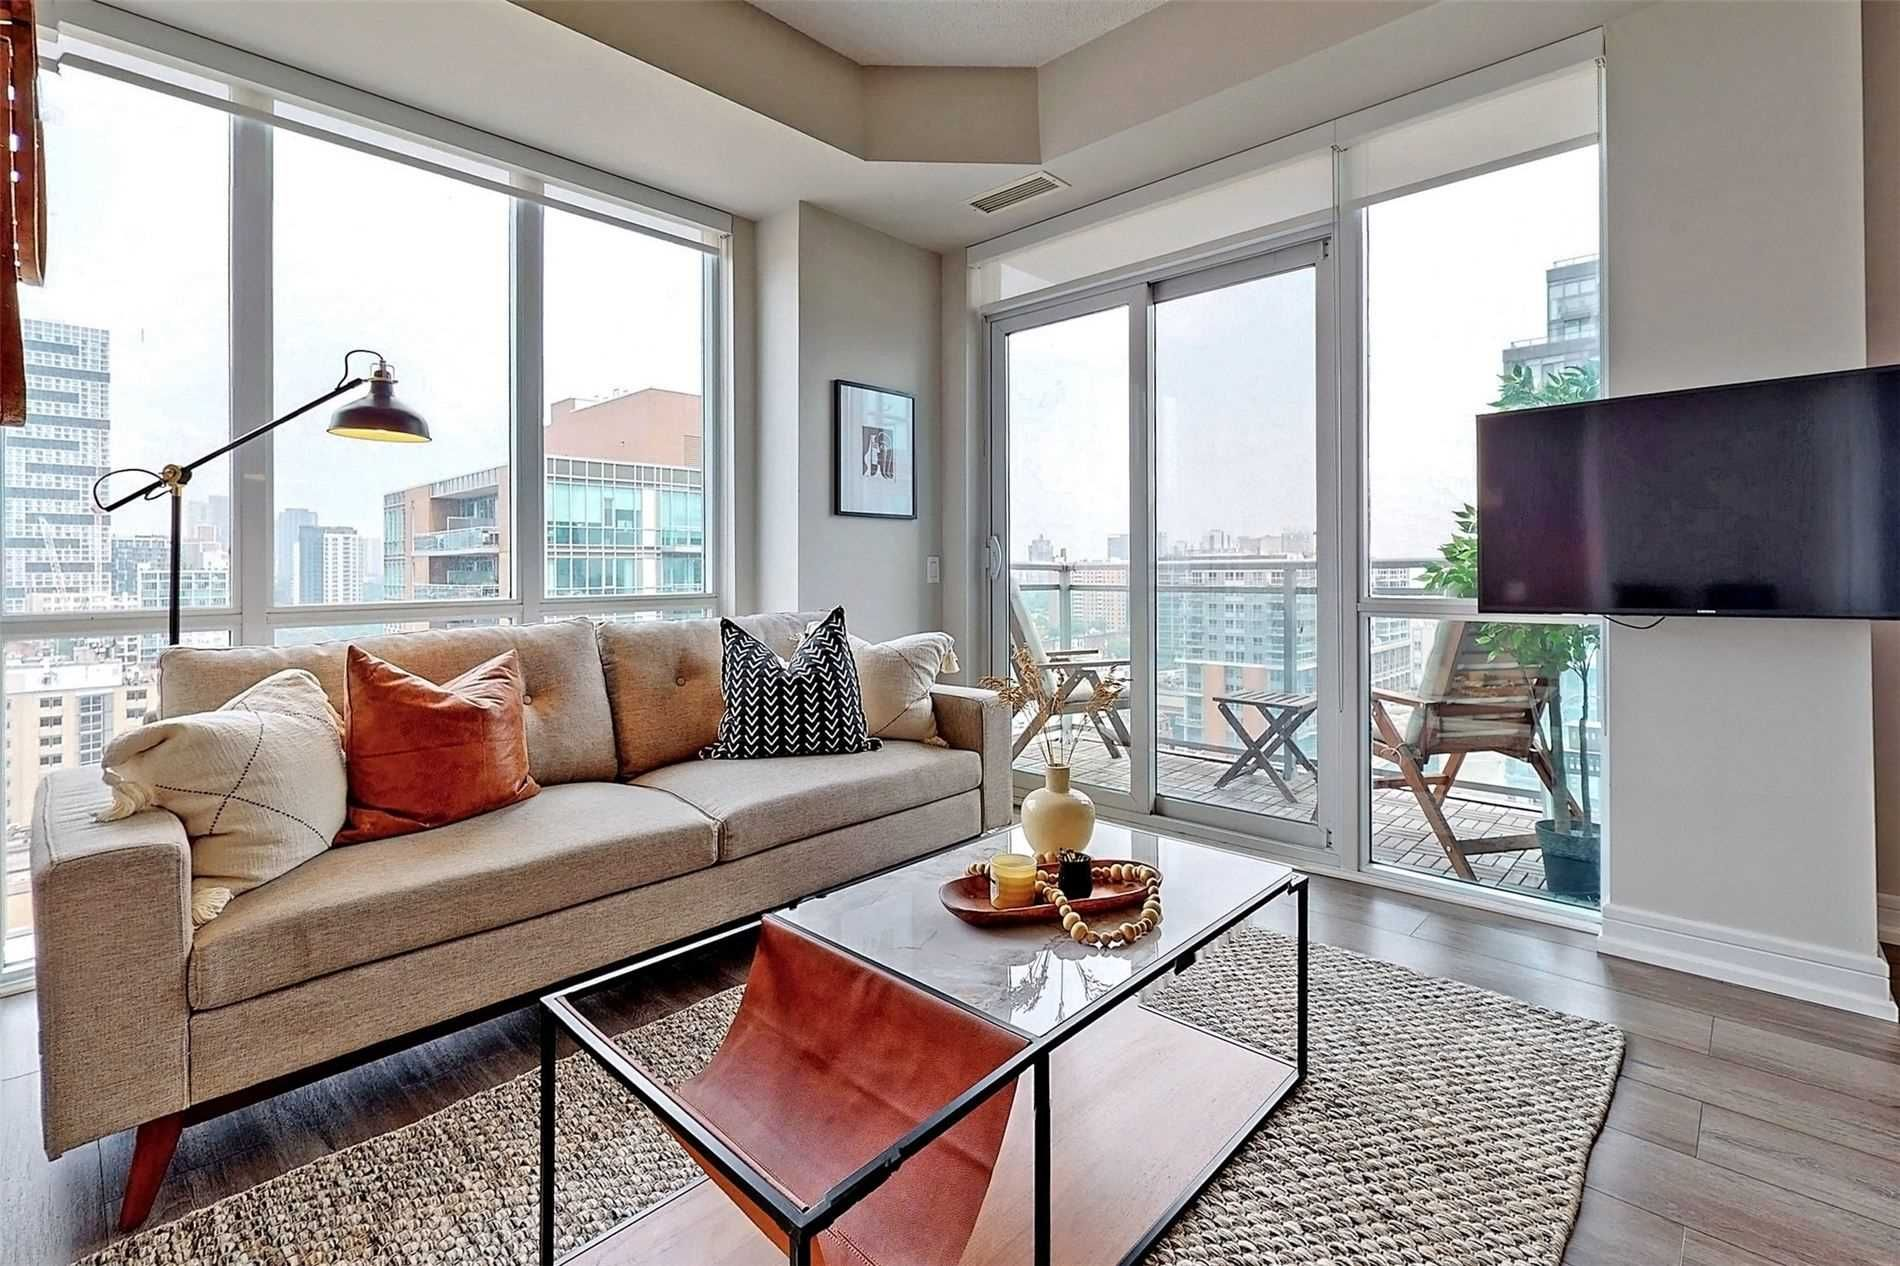 112 George St, unit S1501 for sale in St. Lawrence - image #2